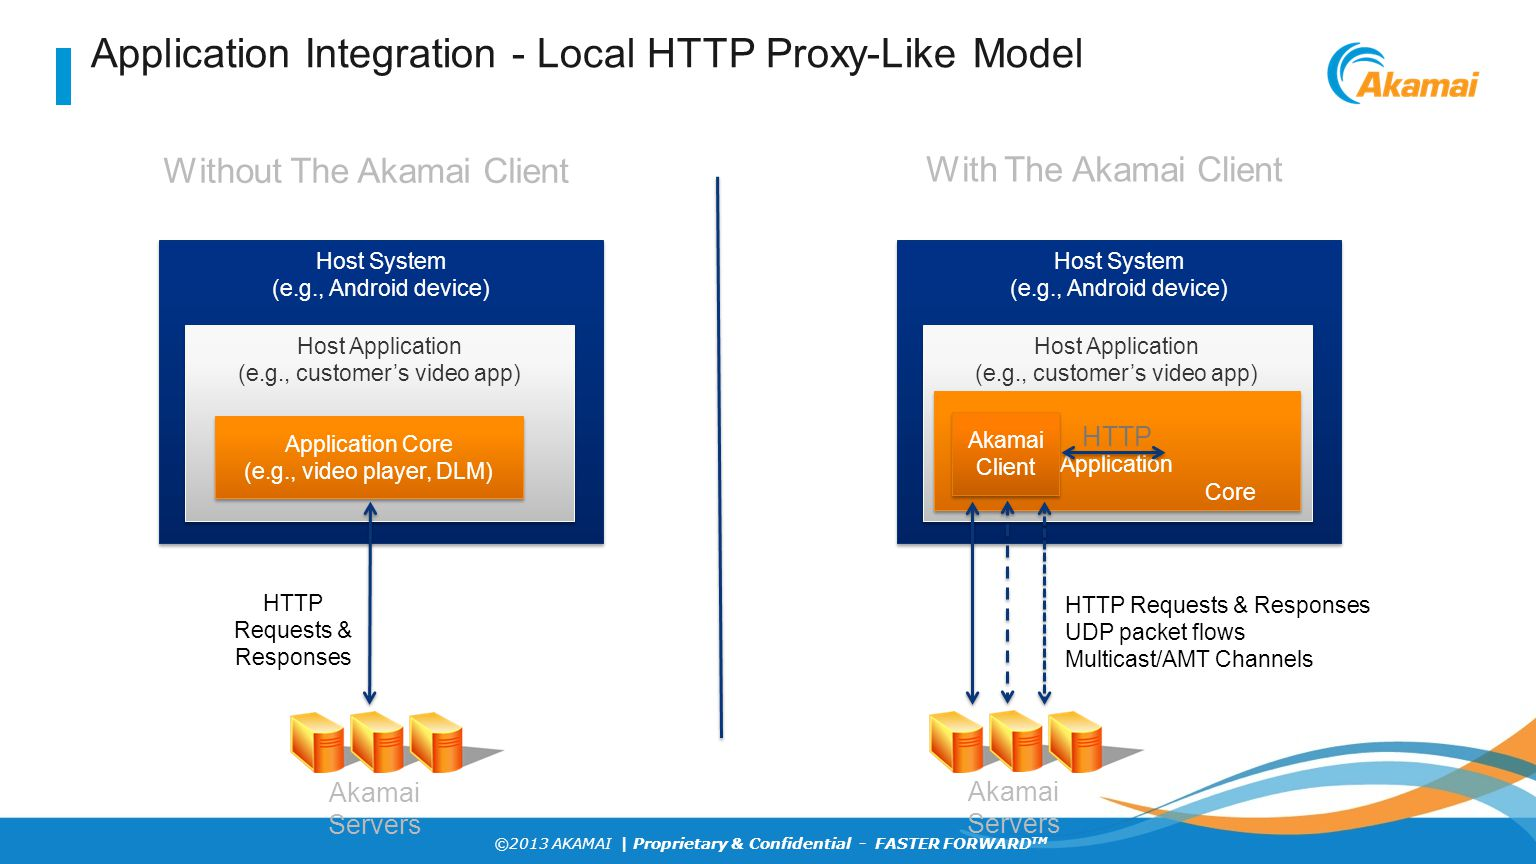 Application Integration - Local HTTP Proxy-Like Model